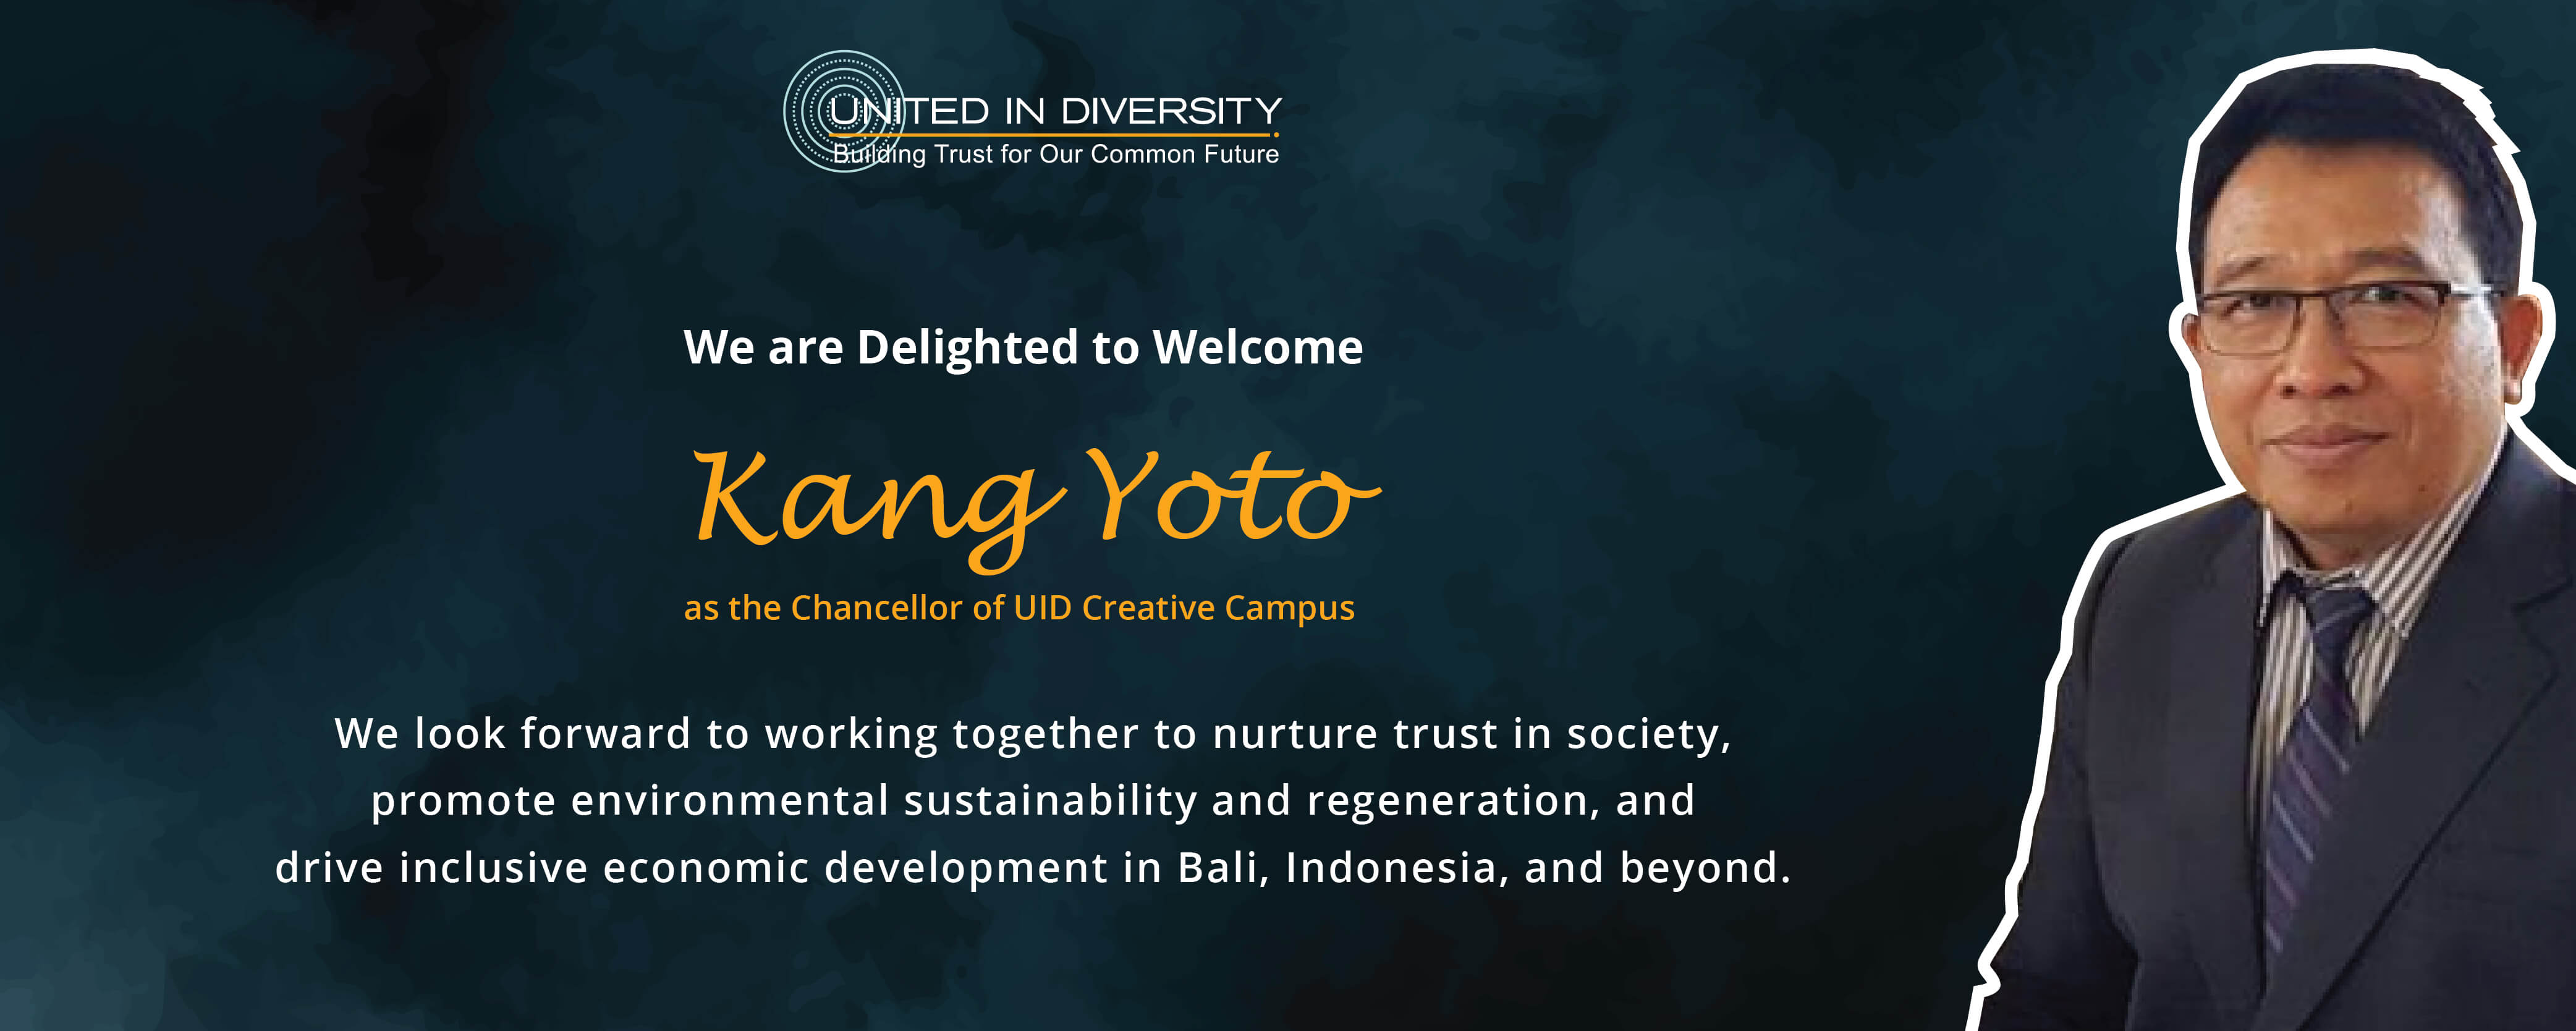 We are delighted to welcome  Kang Yoto   as the Chancellor of UID Creative Campus